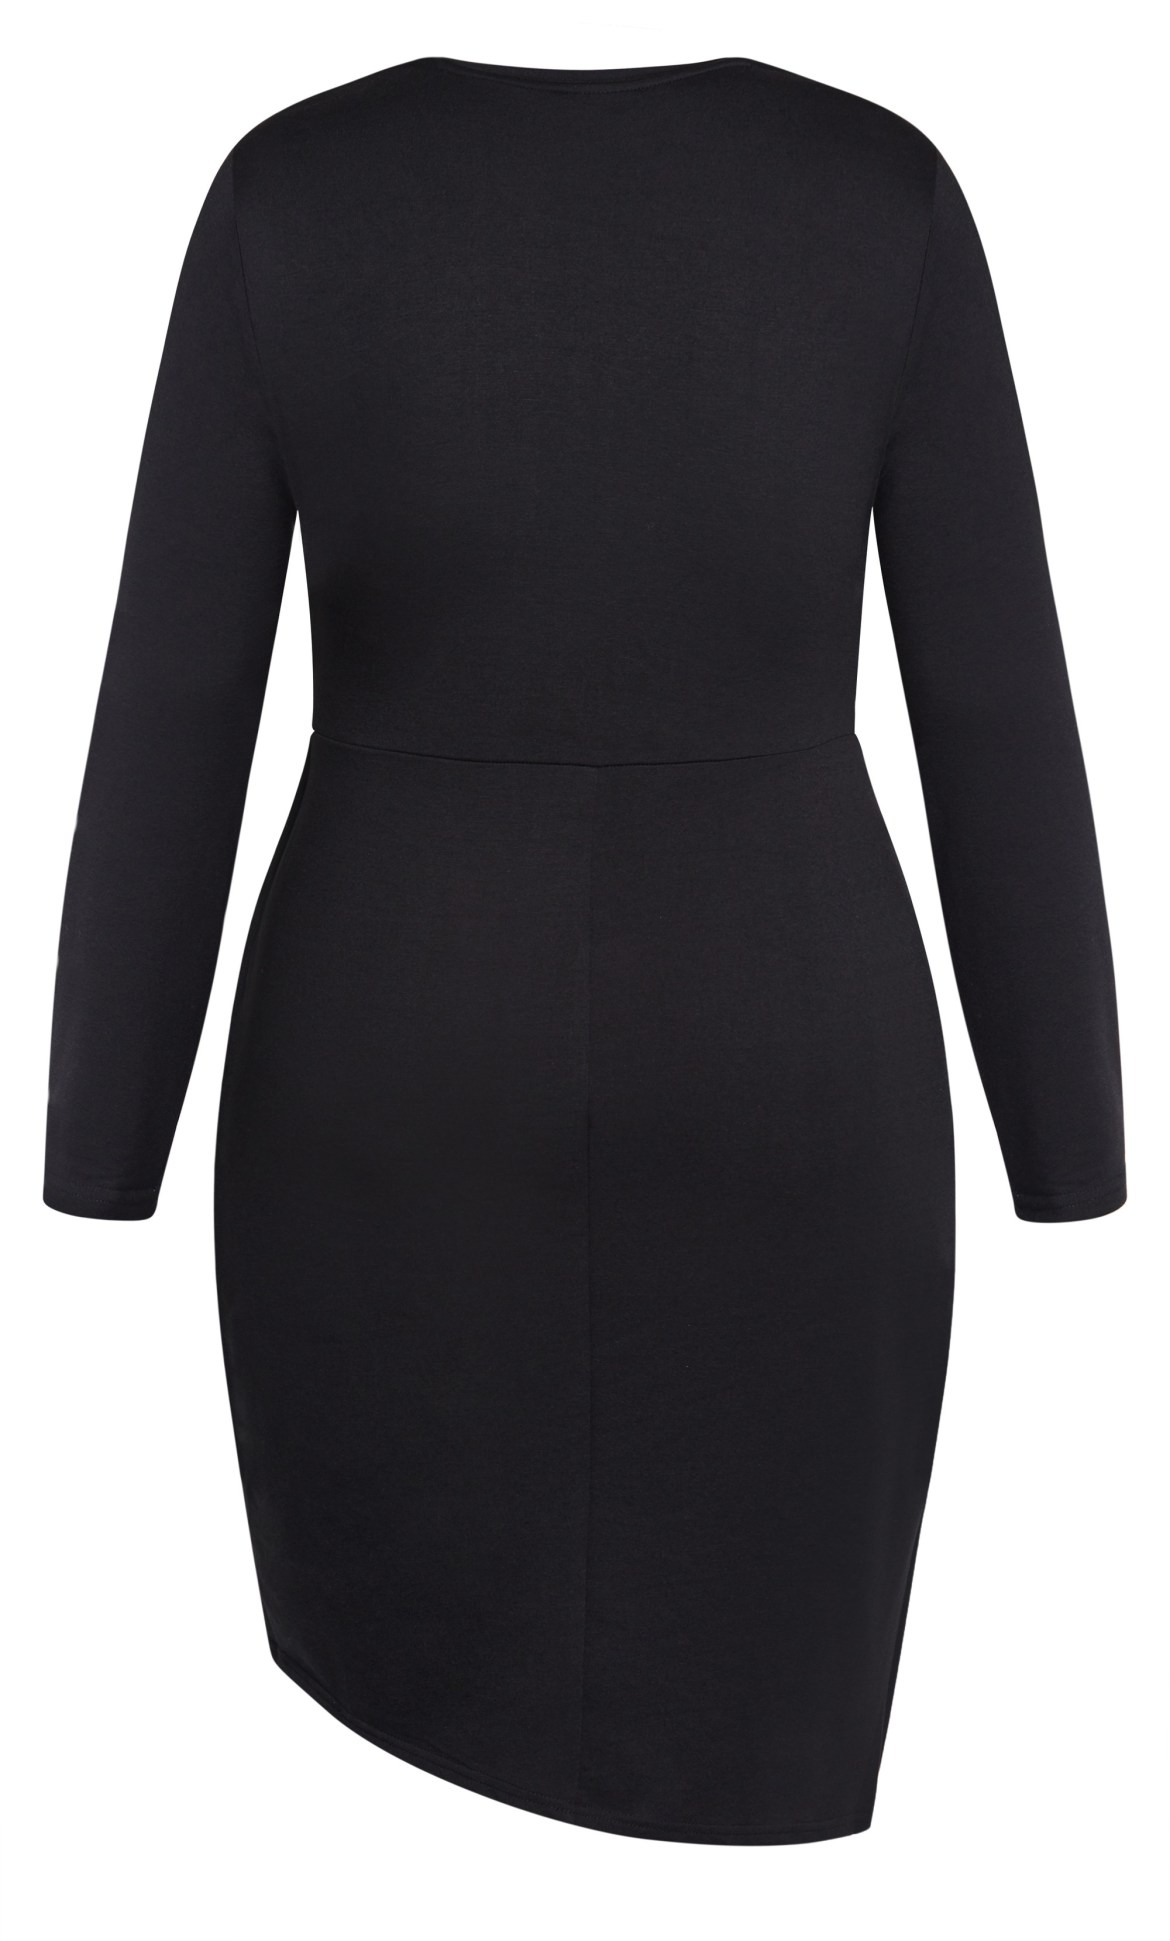 Twist Bodycon Dress - black 11